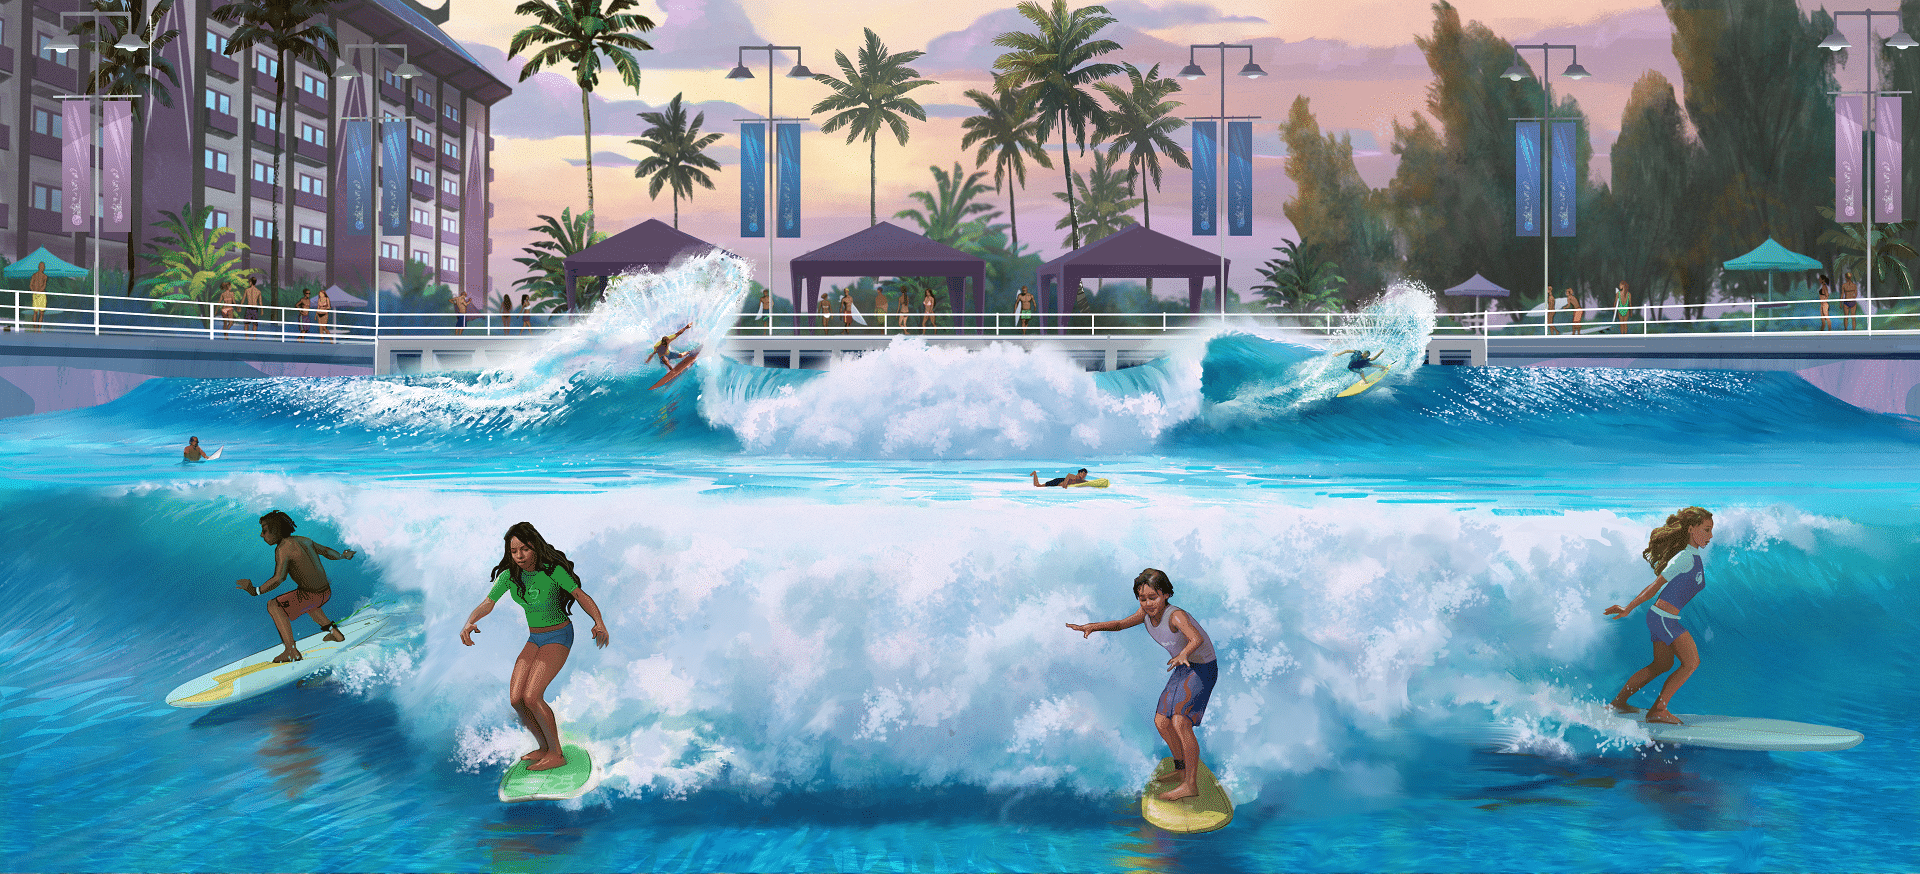 heres another one of those artists impressions of the yet to be built wavepool that gets meright there in the upper waters of my nervous system